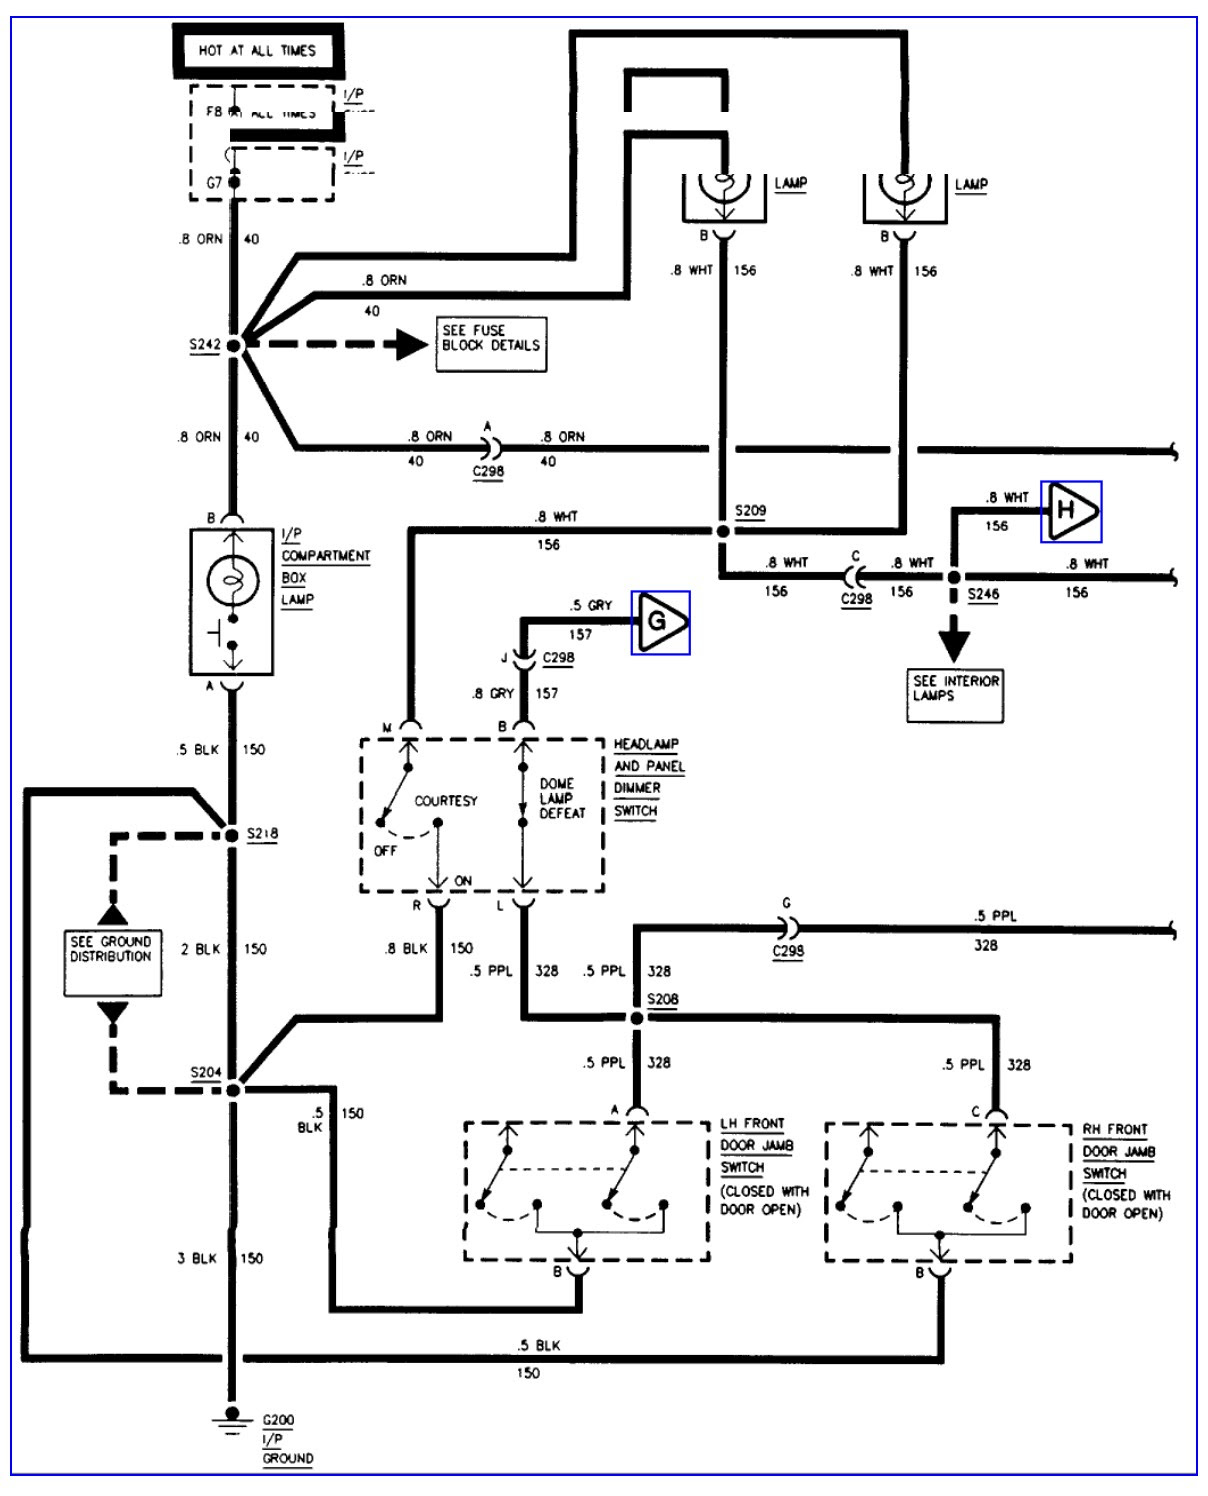 1995 Topkick Wiring Diagram